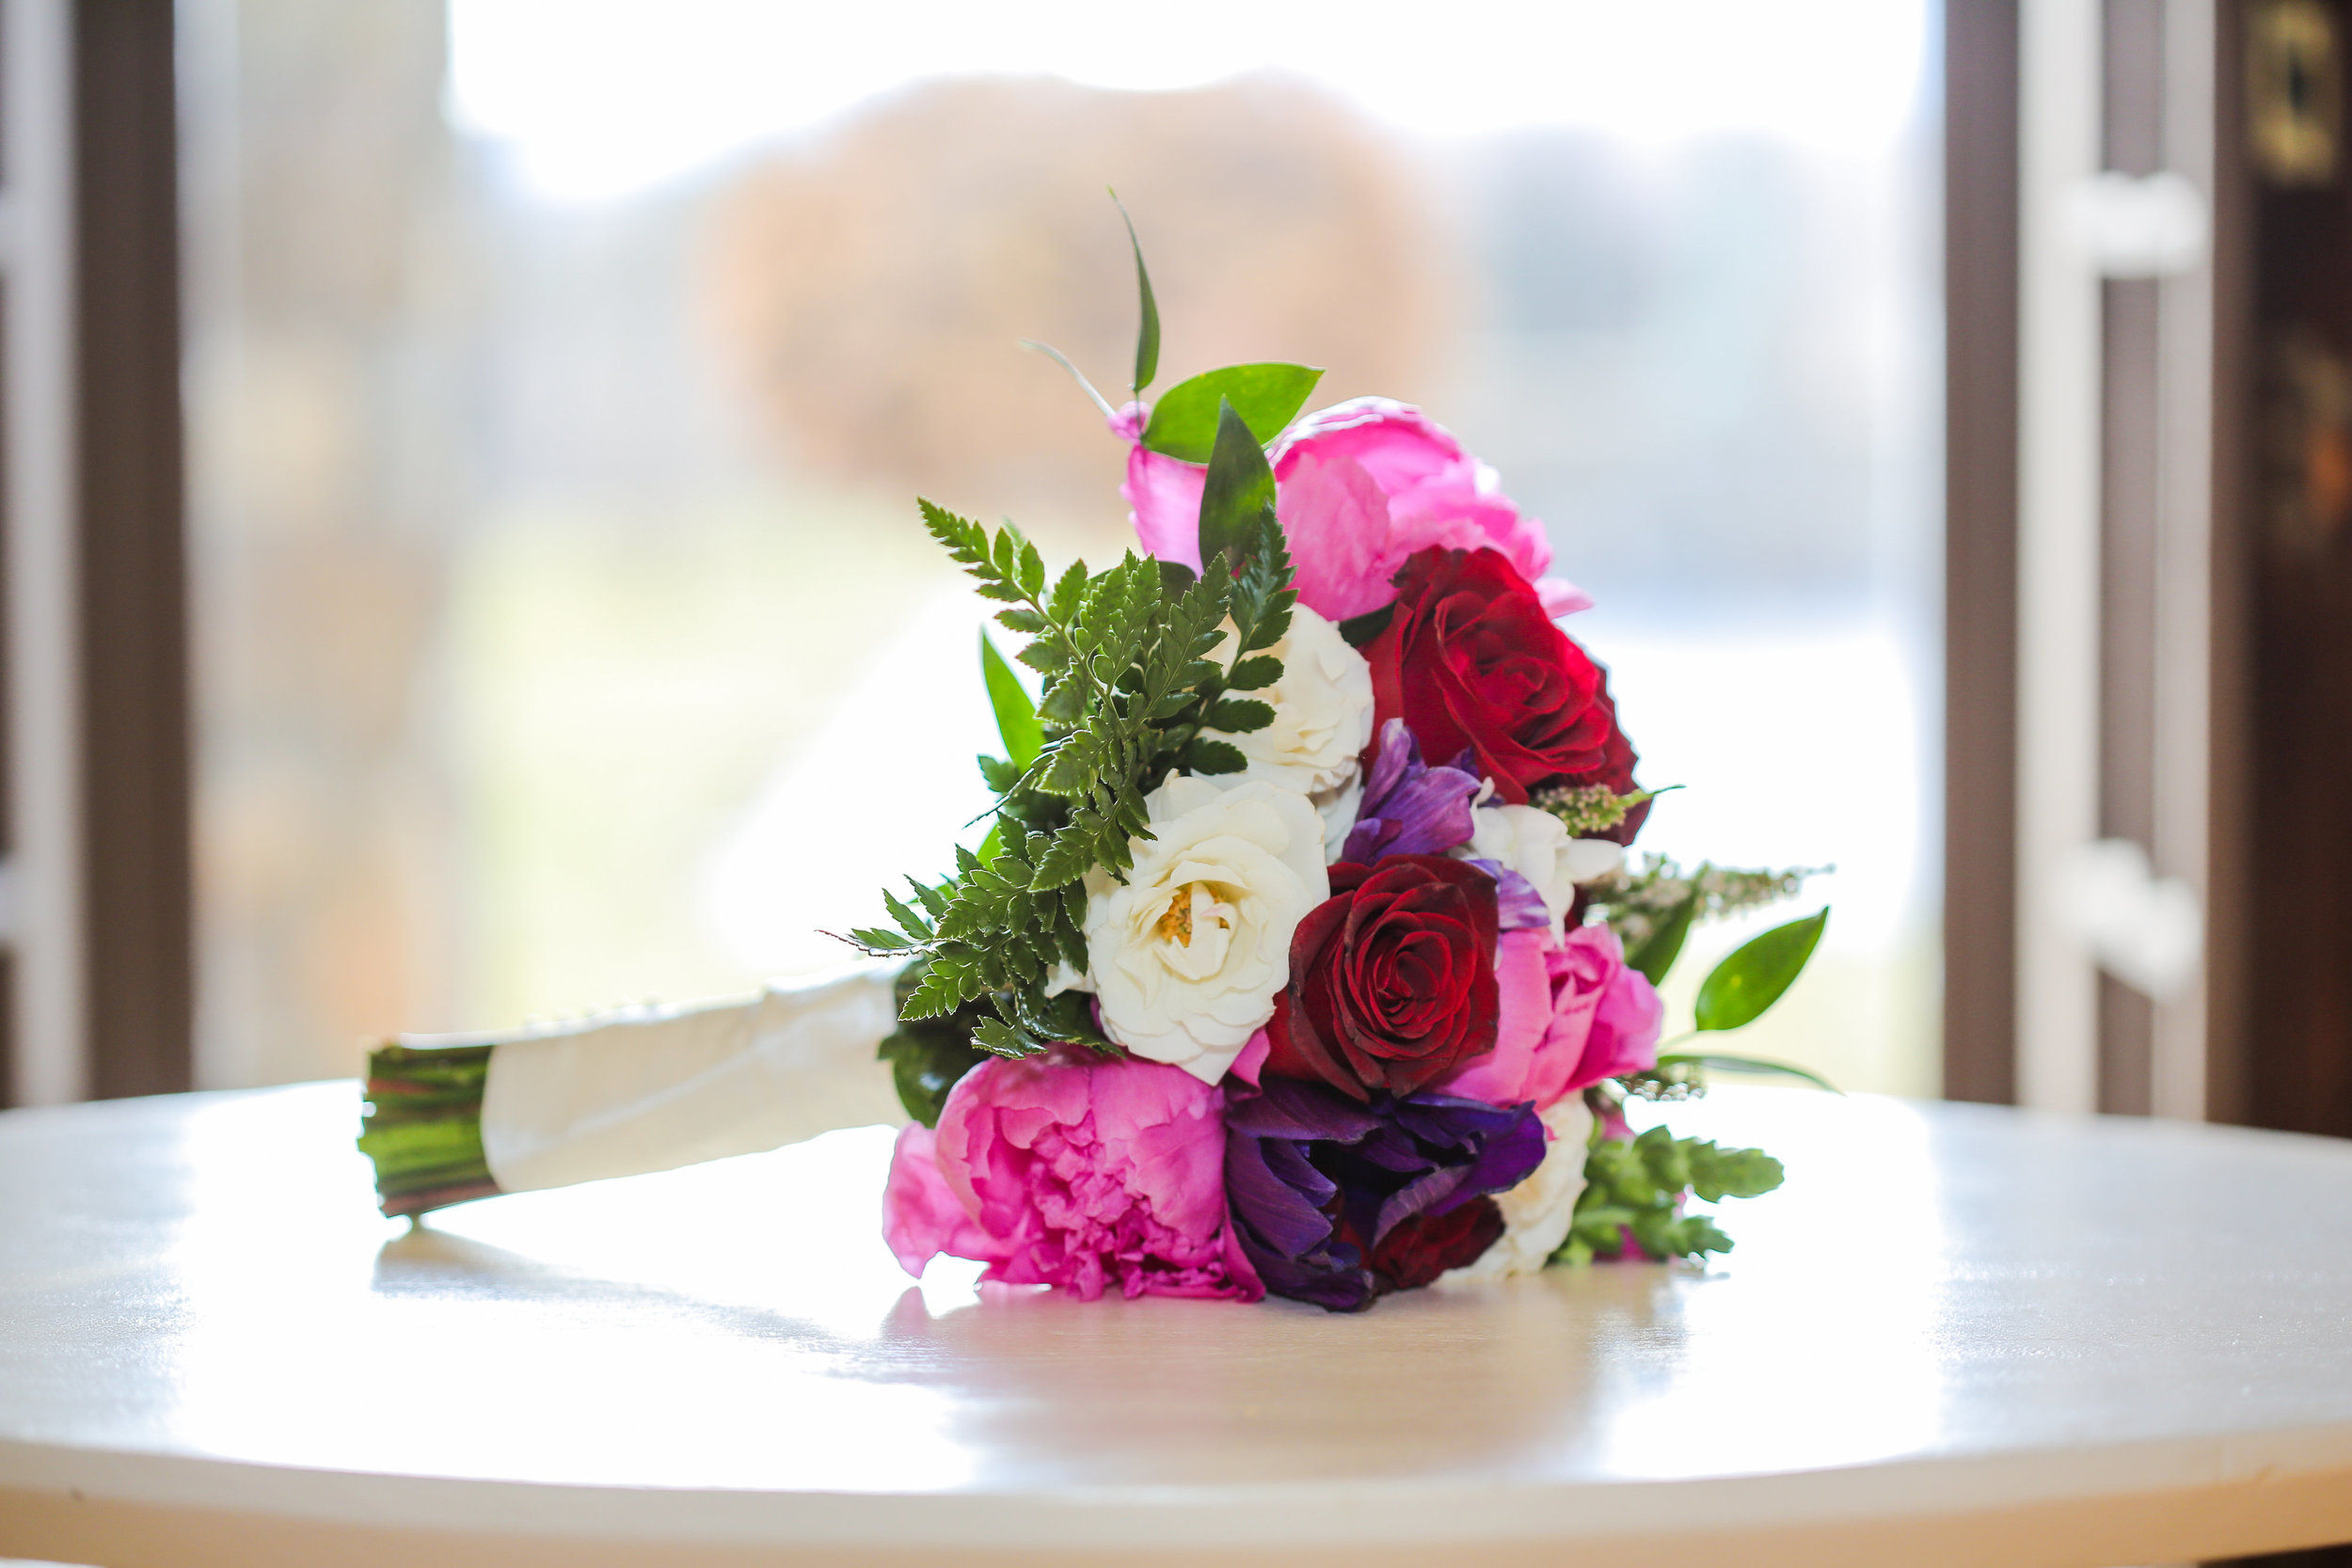 Bridal bouquet with deep purple anemone, pink peonies and red roses. This is perfect for a bride that loves bright colors. Raiza Vega Photography